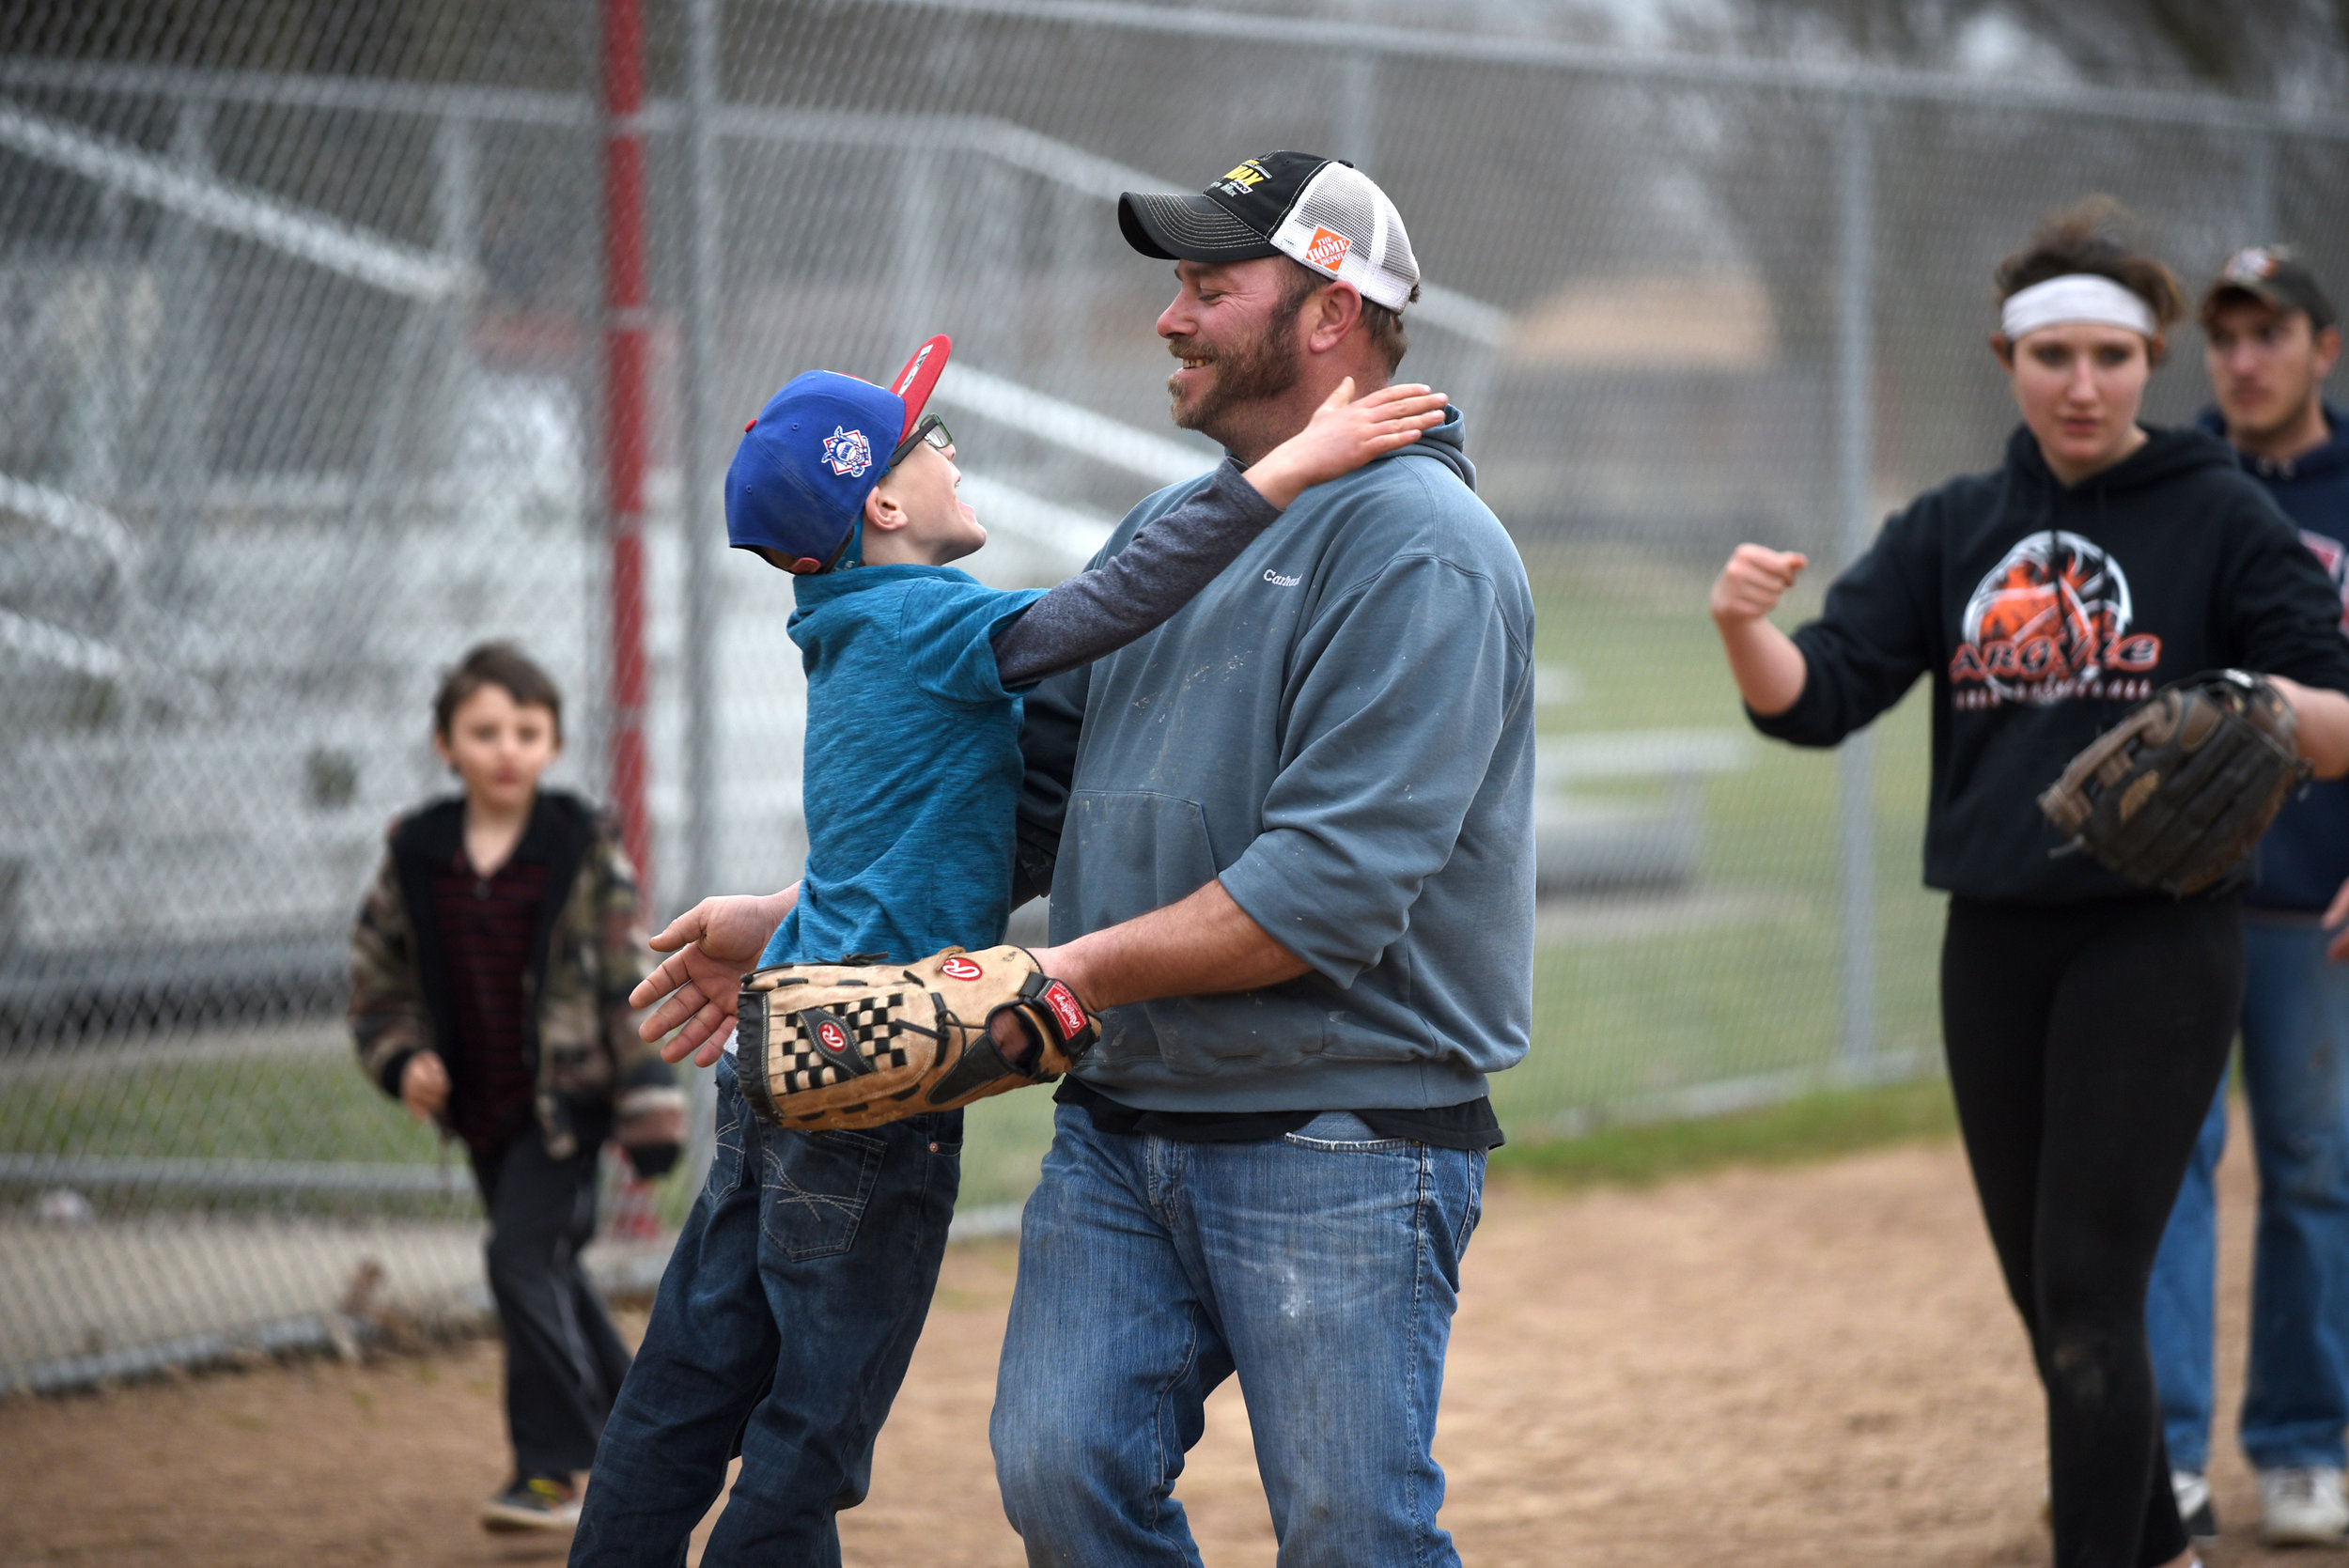 Mikey Helfvogt, 6, hugs his dad Keith Helfvogt, of Argyle, after a family game of softball after church at Twining Park April 2, 2017. The Helfvogt and Yaun families play almost every other Sunday after church. Their family is big enough for two teams.